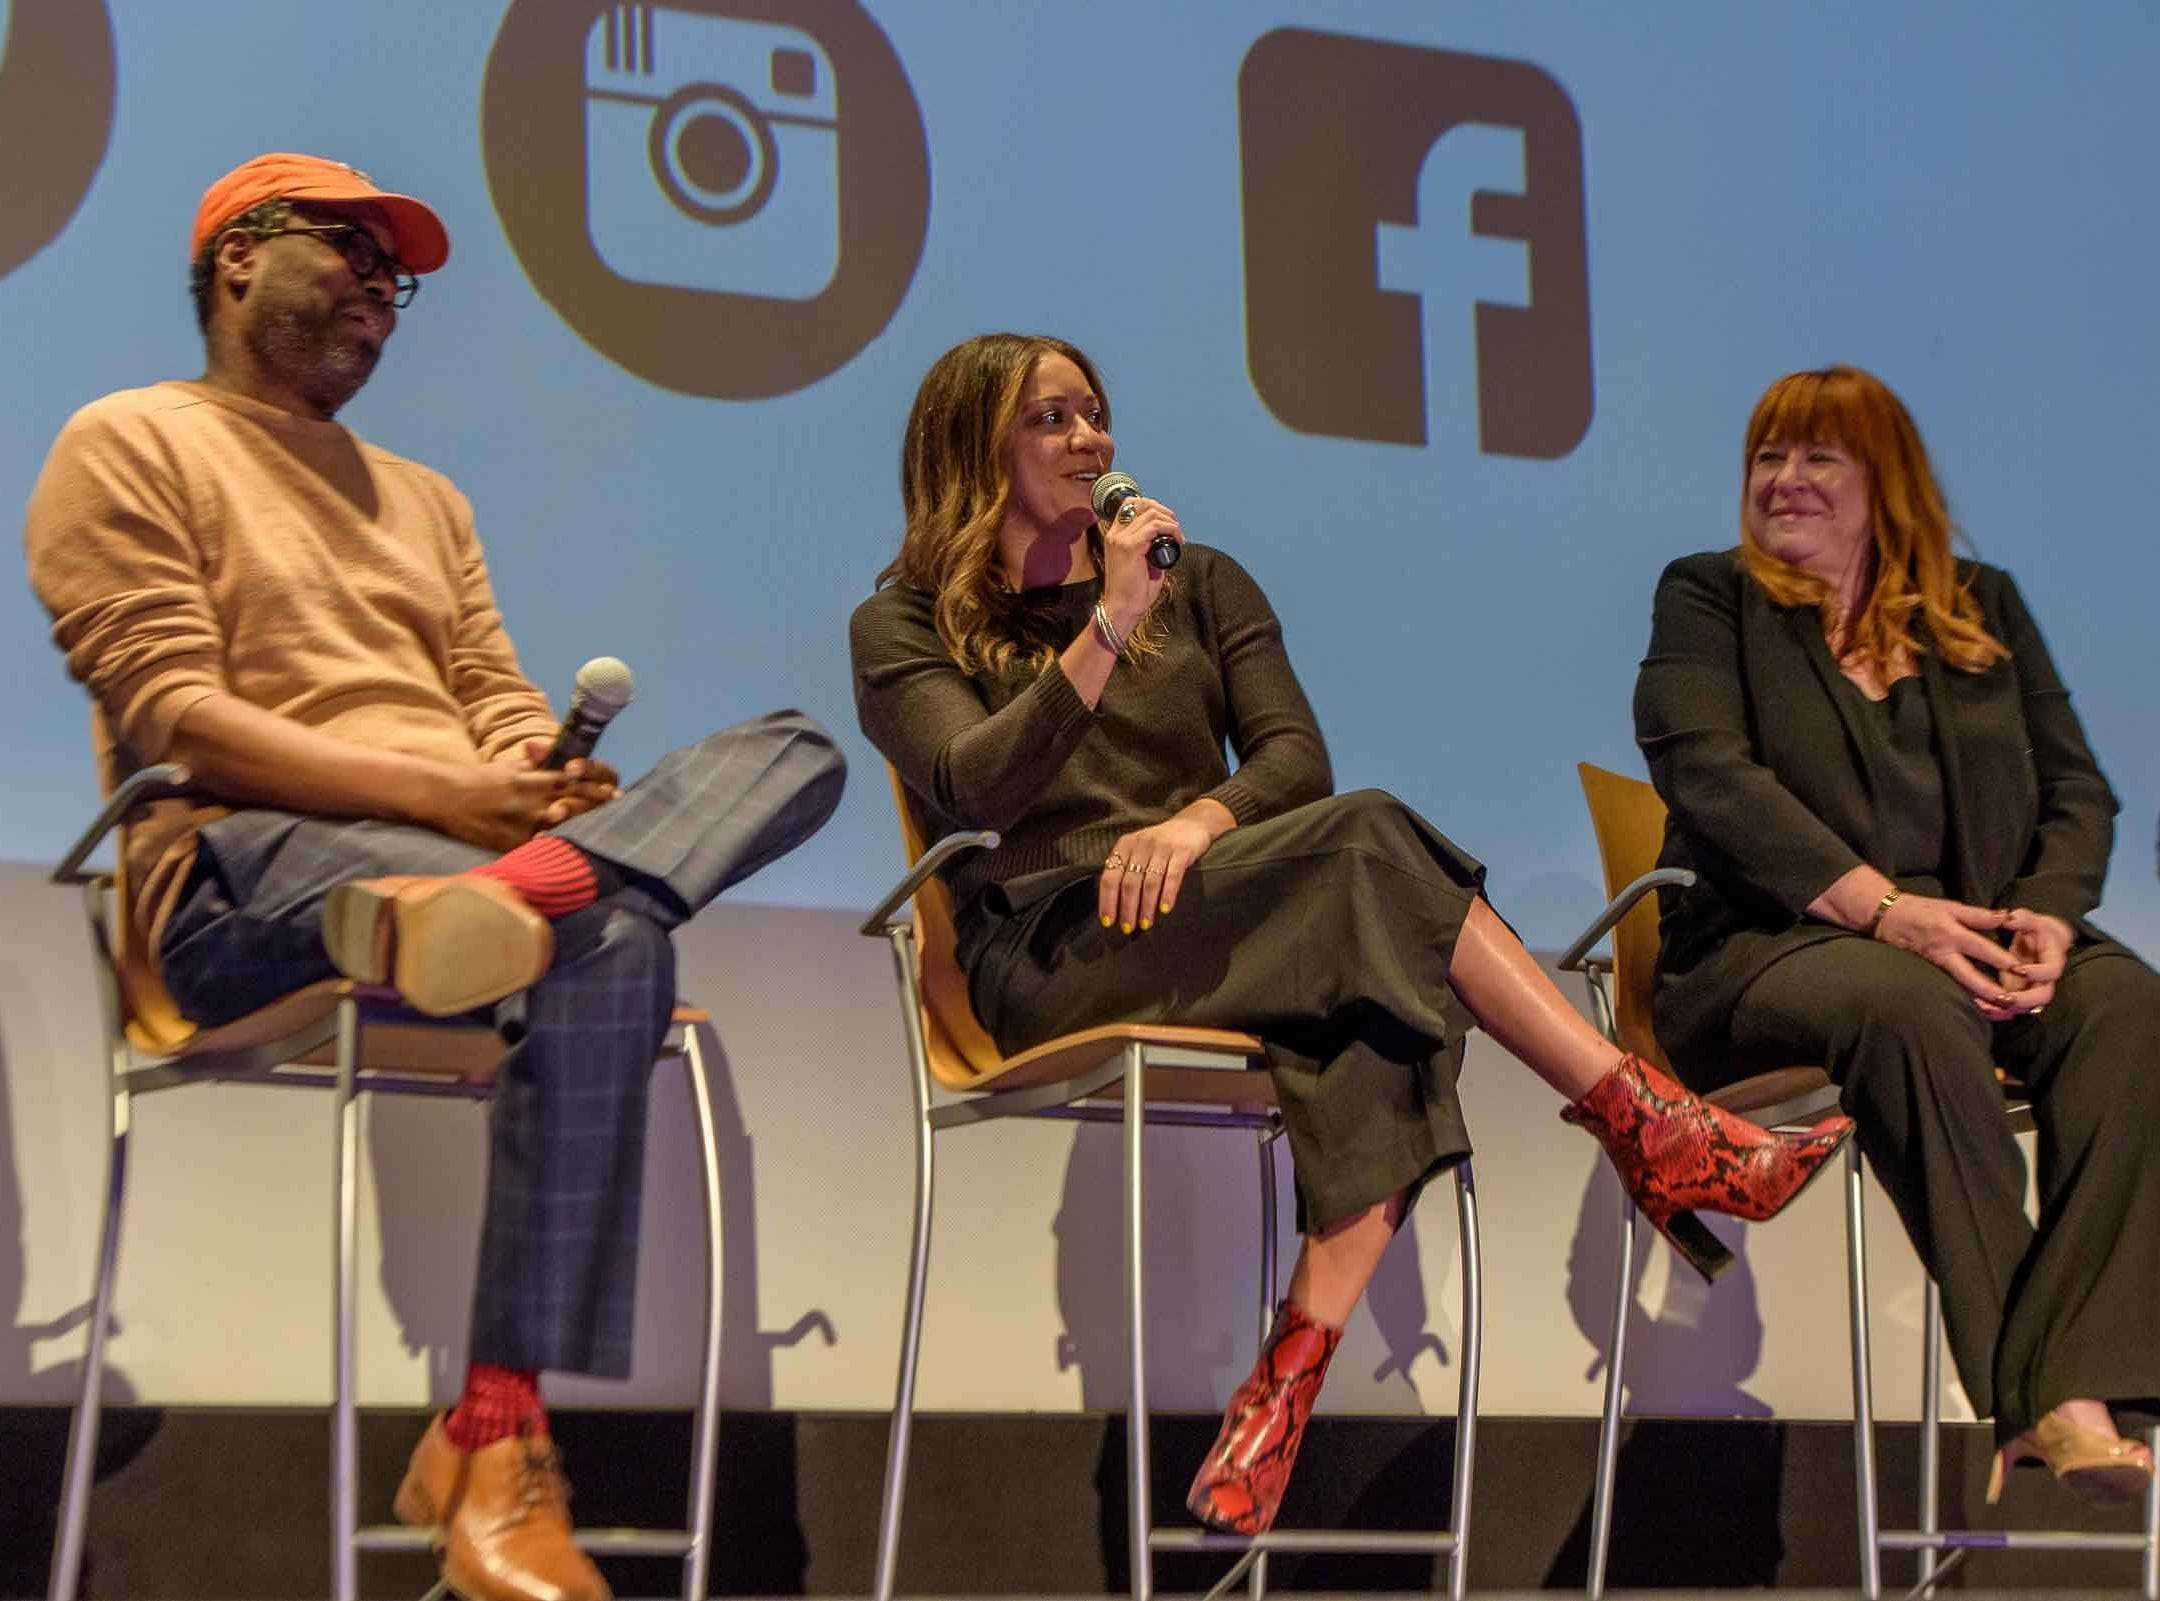 The Freep Film Festival presented the Film Dare to Struggle, Dare to Win at the Detroit Film Theatre at the DIA April 14, 2019. A panel discussion followed hosted by Stephan Henderson that included Director Christopher Gruse, executive producer Katy Cockrel, and former Detroit city counsel member Sheila Cockrel.